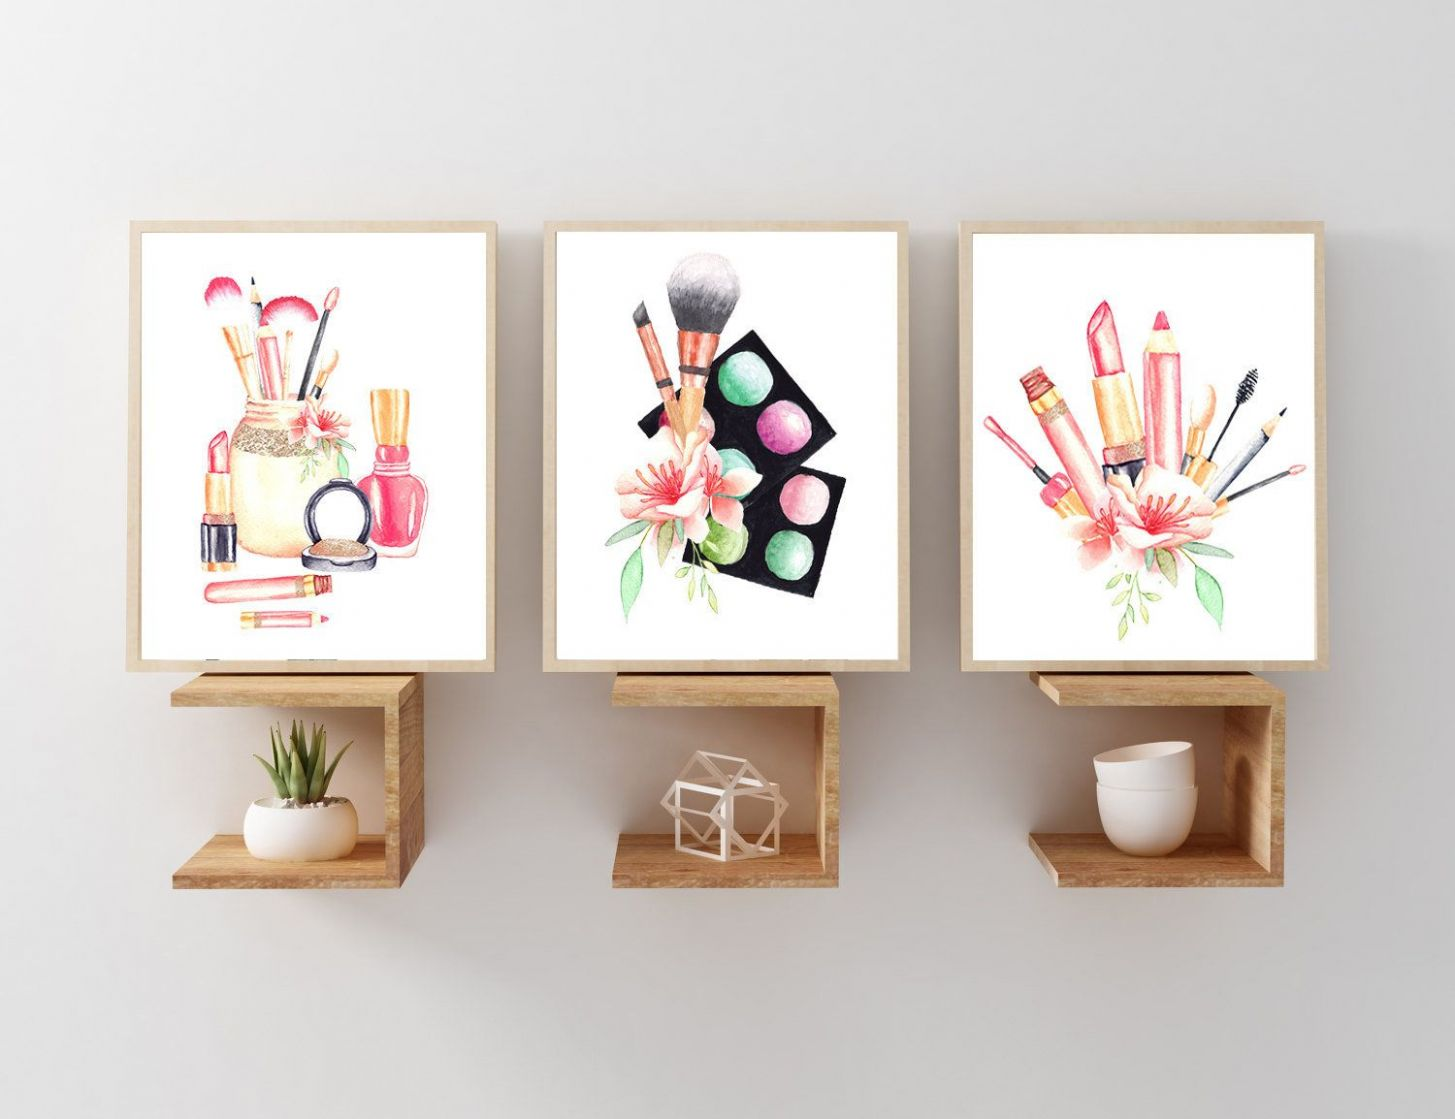 MAKEUP Wall Art, Makeup Room Wall Decor Canvas or Prints, Makeup ...